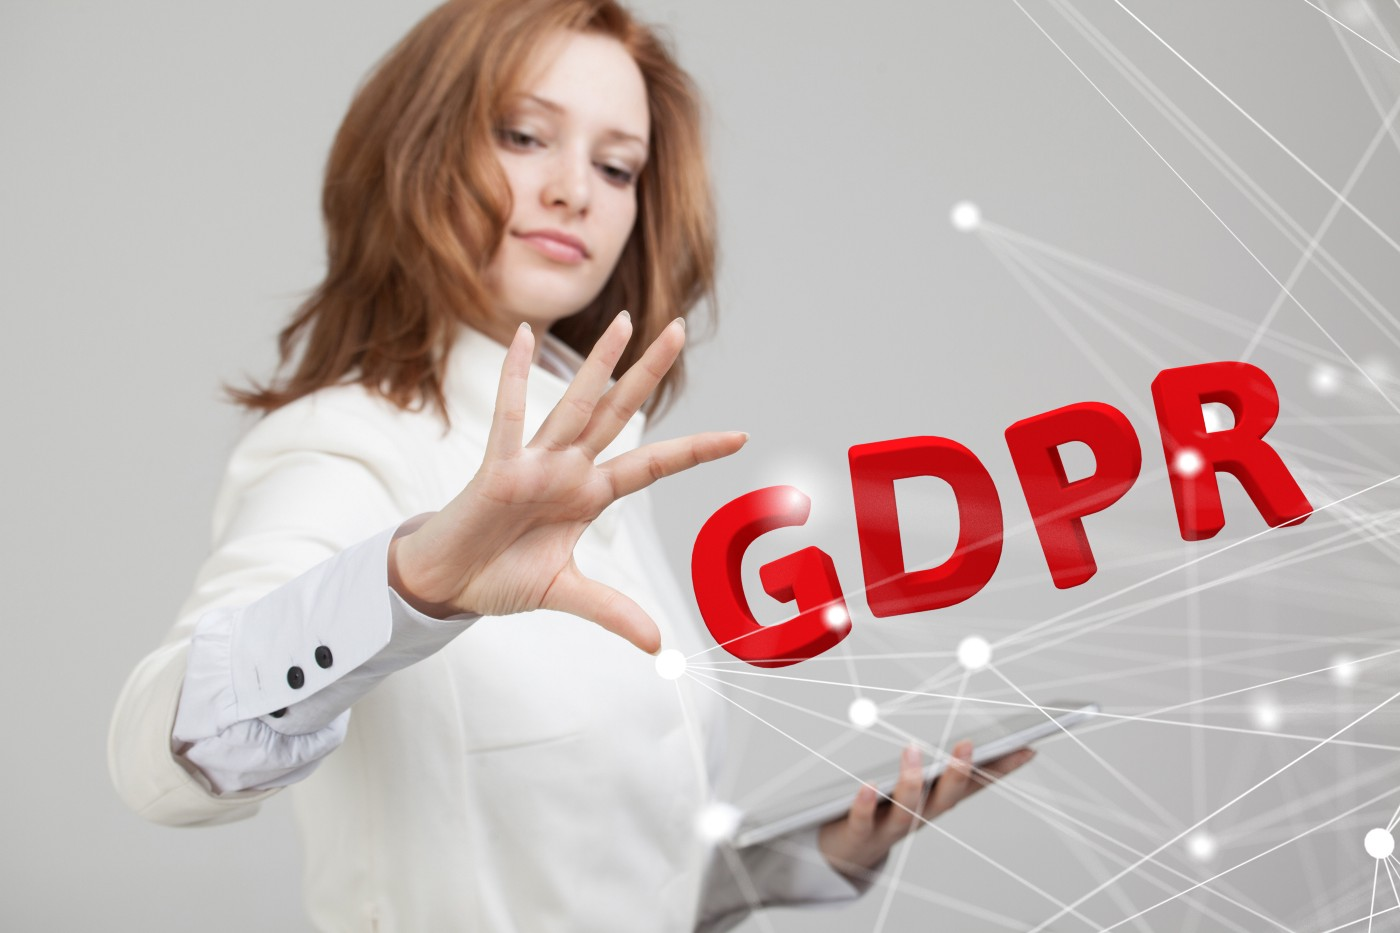 GDPR and data security in education